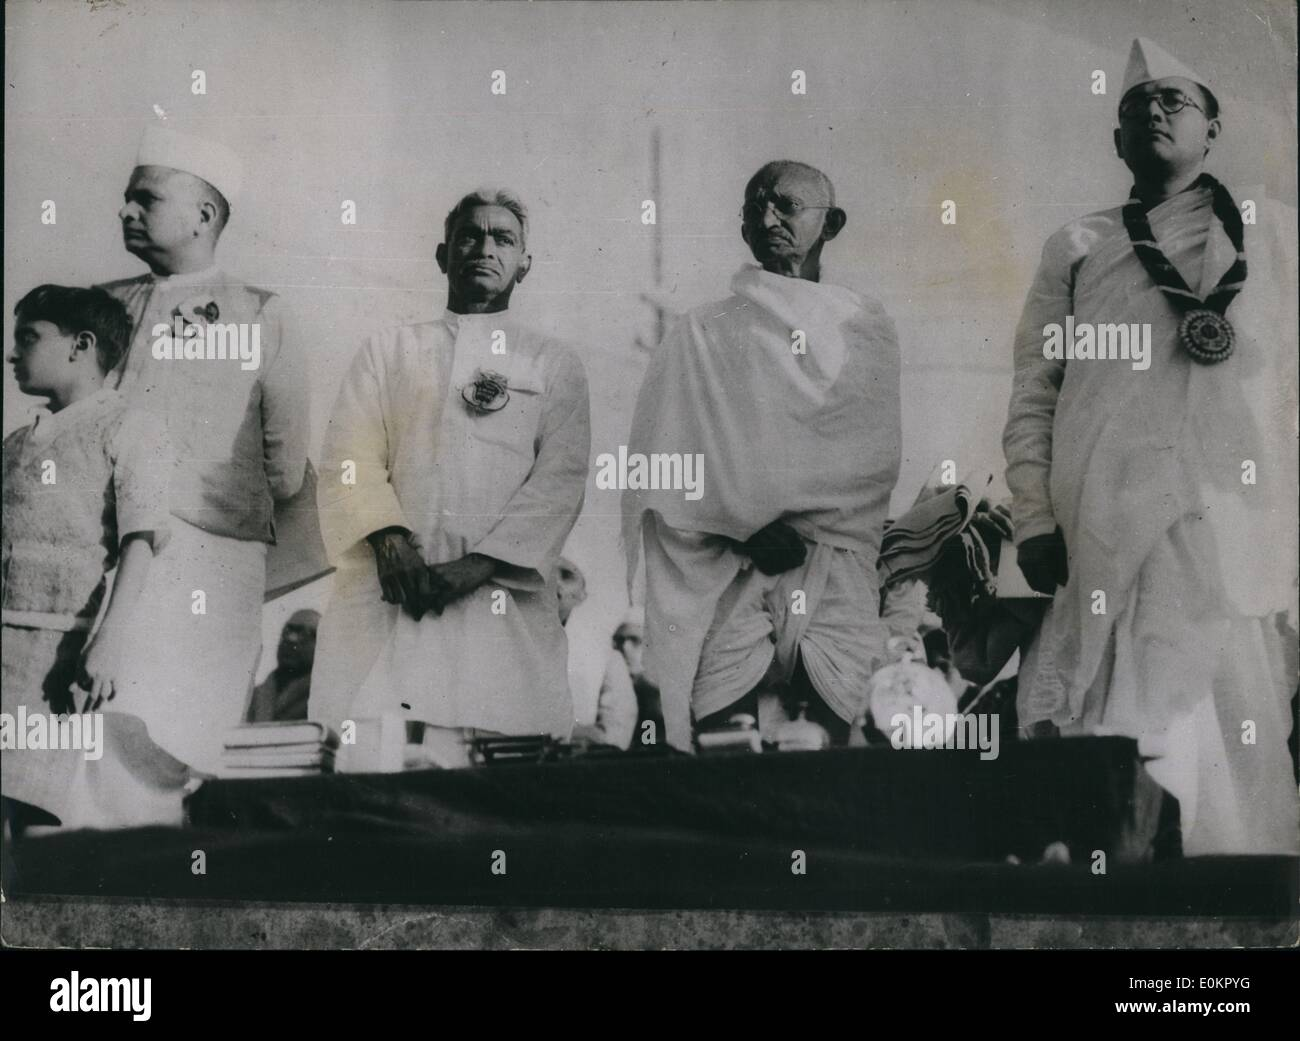 Jan. 01, 1938 - Indian National Congress At Hardupura: Personalities ion the Dias L=-R: Seth amnalan Bajai, Darar Gopaldas Dasai; Chair an of the Redeption committee Mahatma Gandhi and Pres. Subas Chanbrag Bose with the Garlan the insignia of the Presidentship. - Stock Image